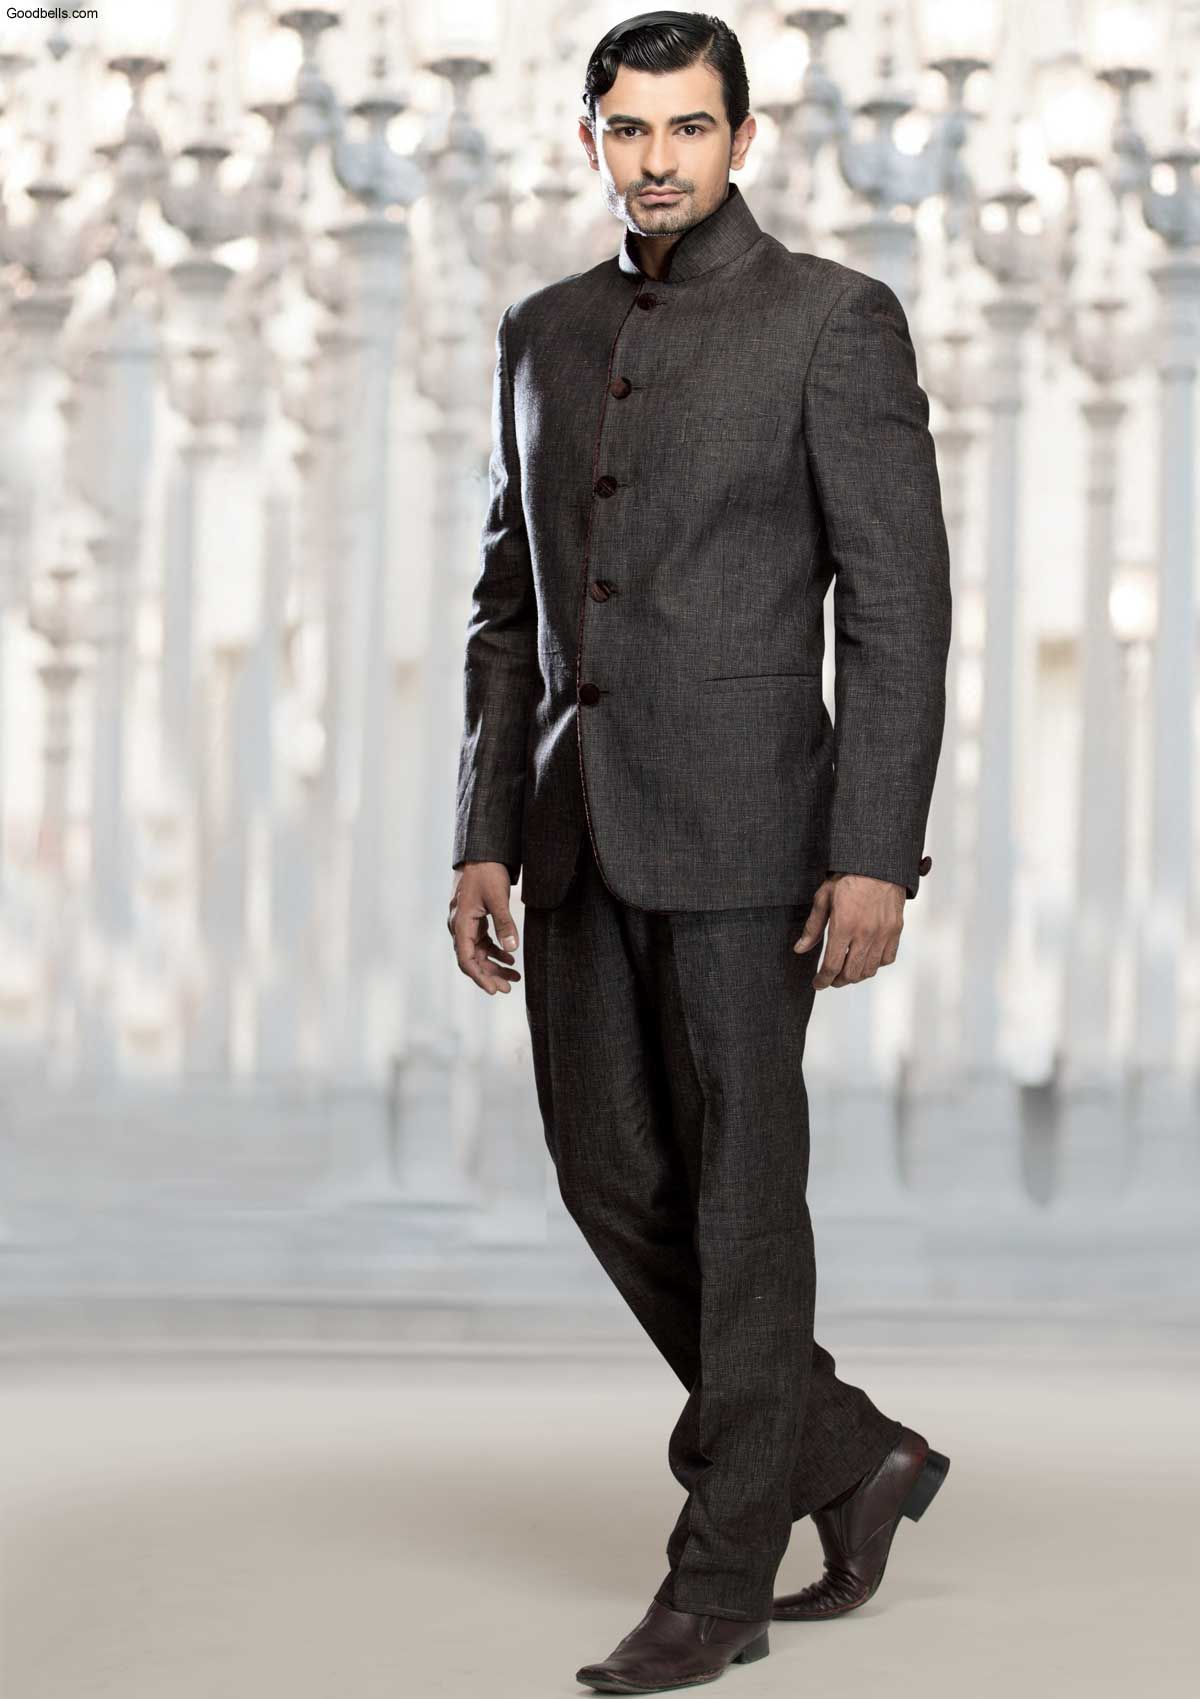 A Jodhpuri Suit is blend of Indian and western aesthetics ...